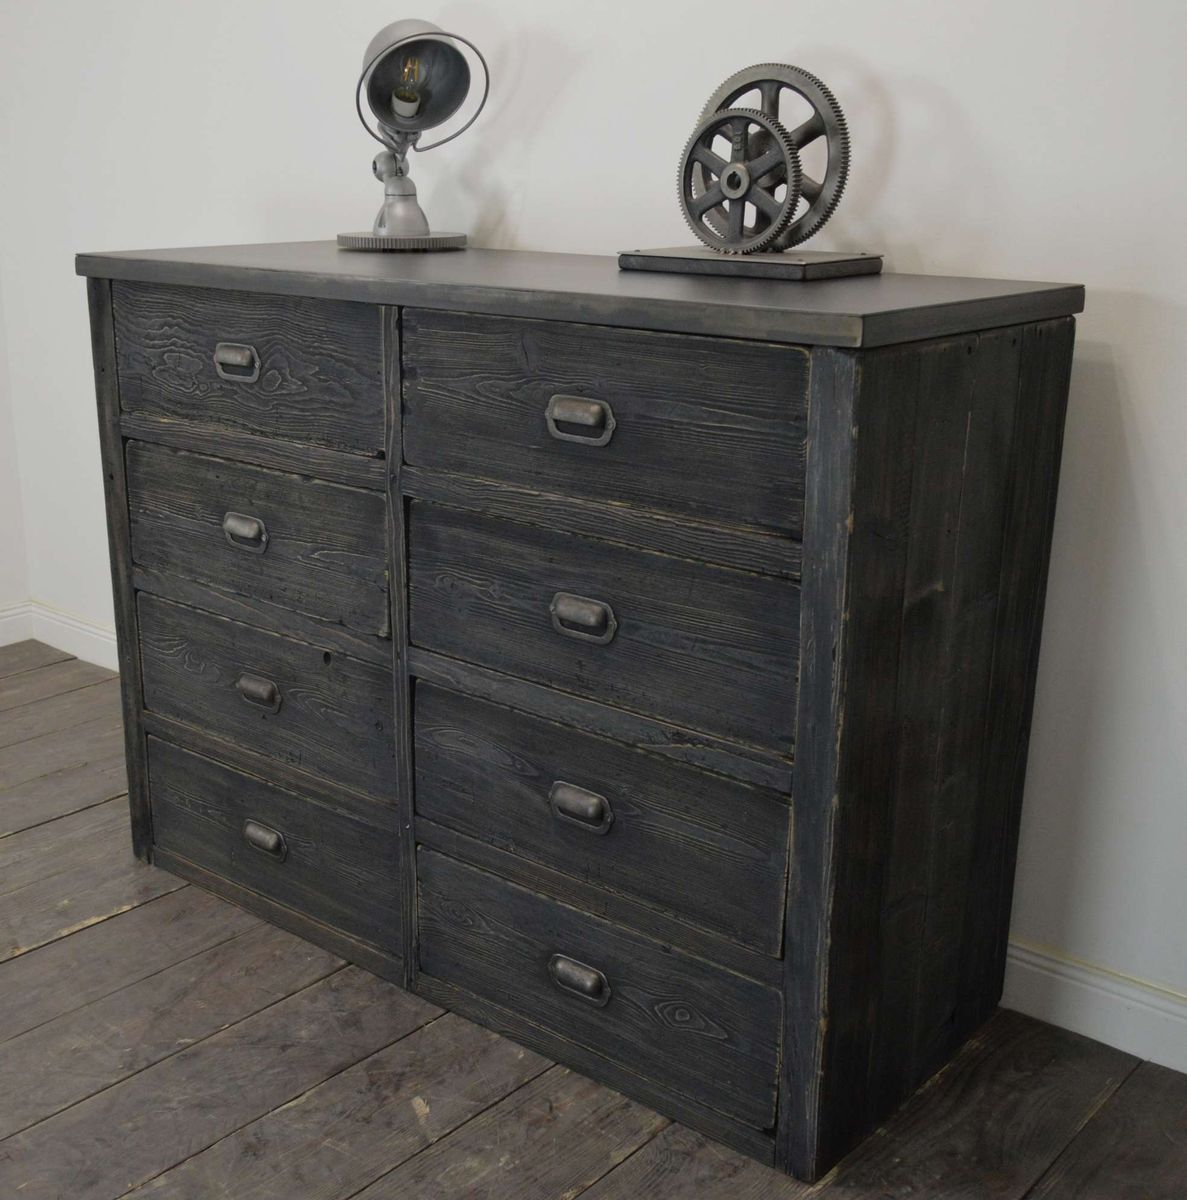 New American Antique Filing Cabinet Antique Office Furniture